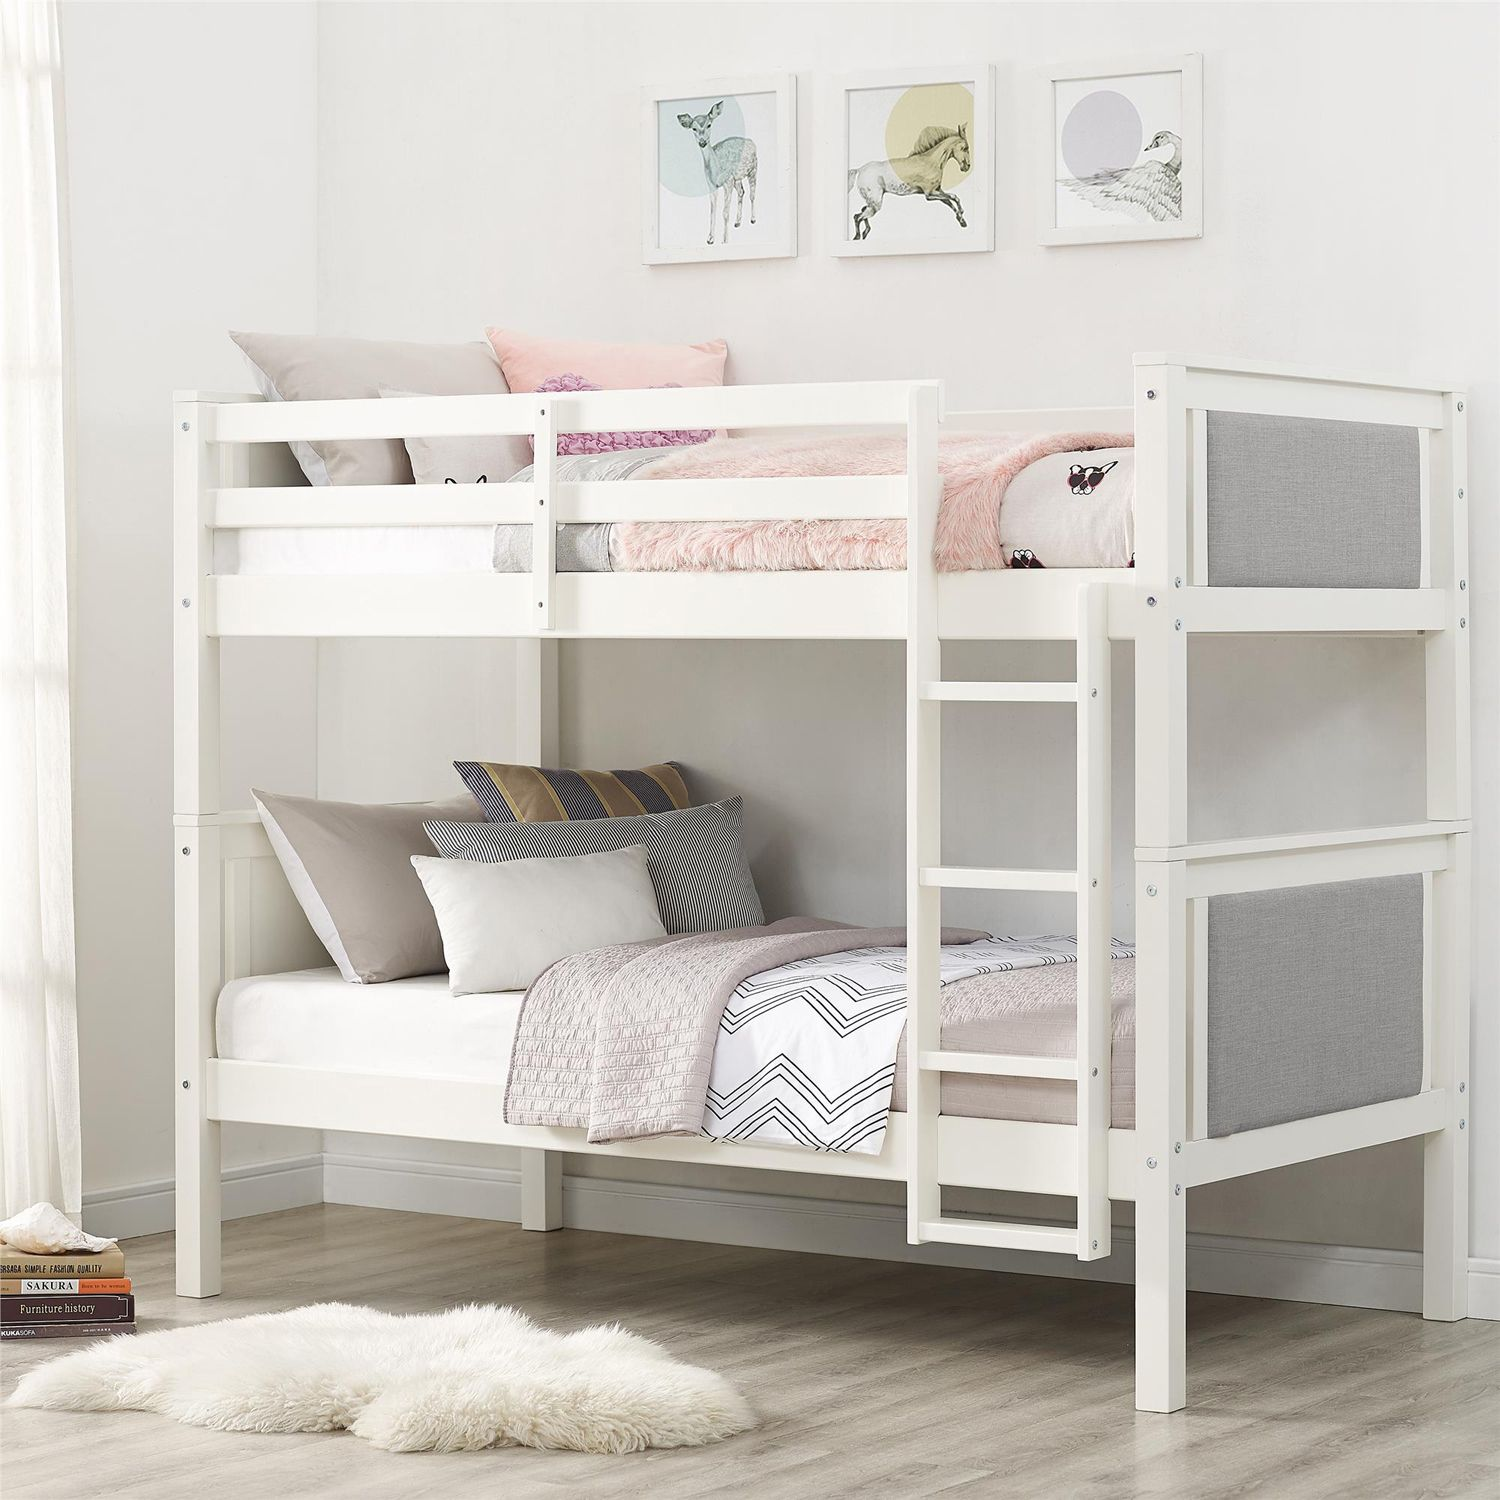 Kids Echo Gray Twin Upholstered Bunk Bed Kid Beds Childrens